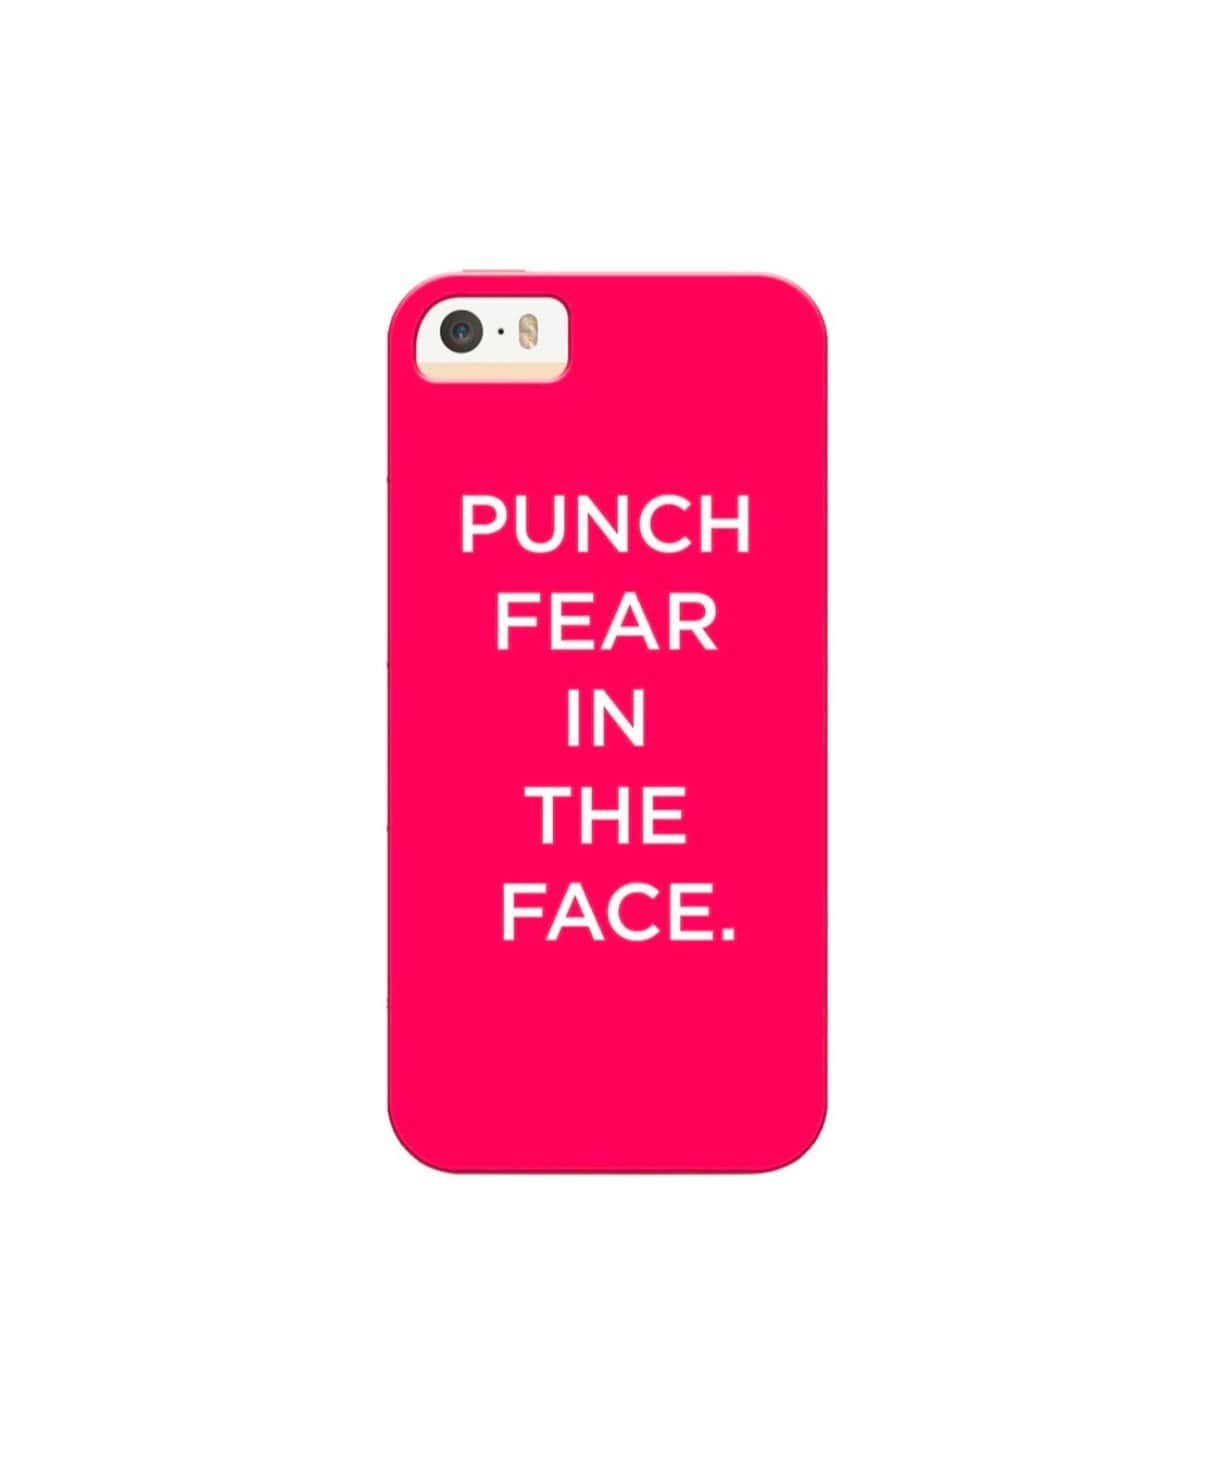 Punch Fear In The Face IPhone Cover (Personalisation Available) - Uptownie